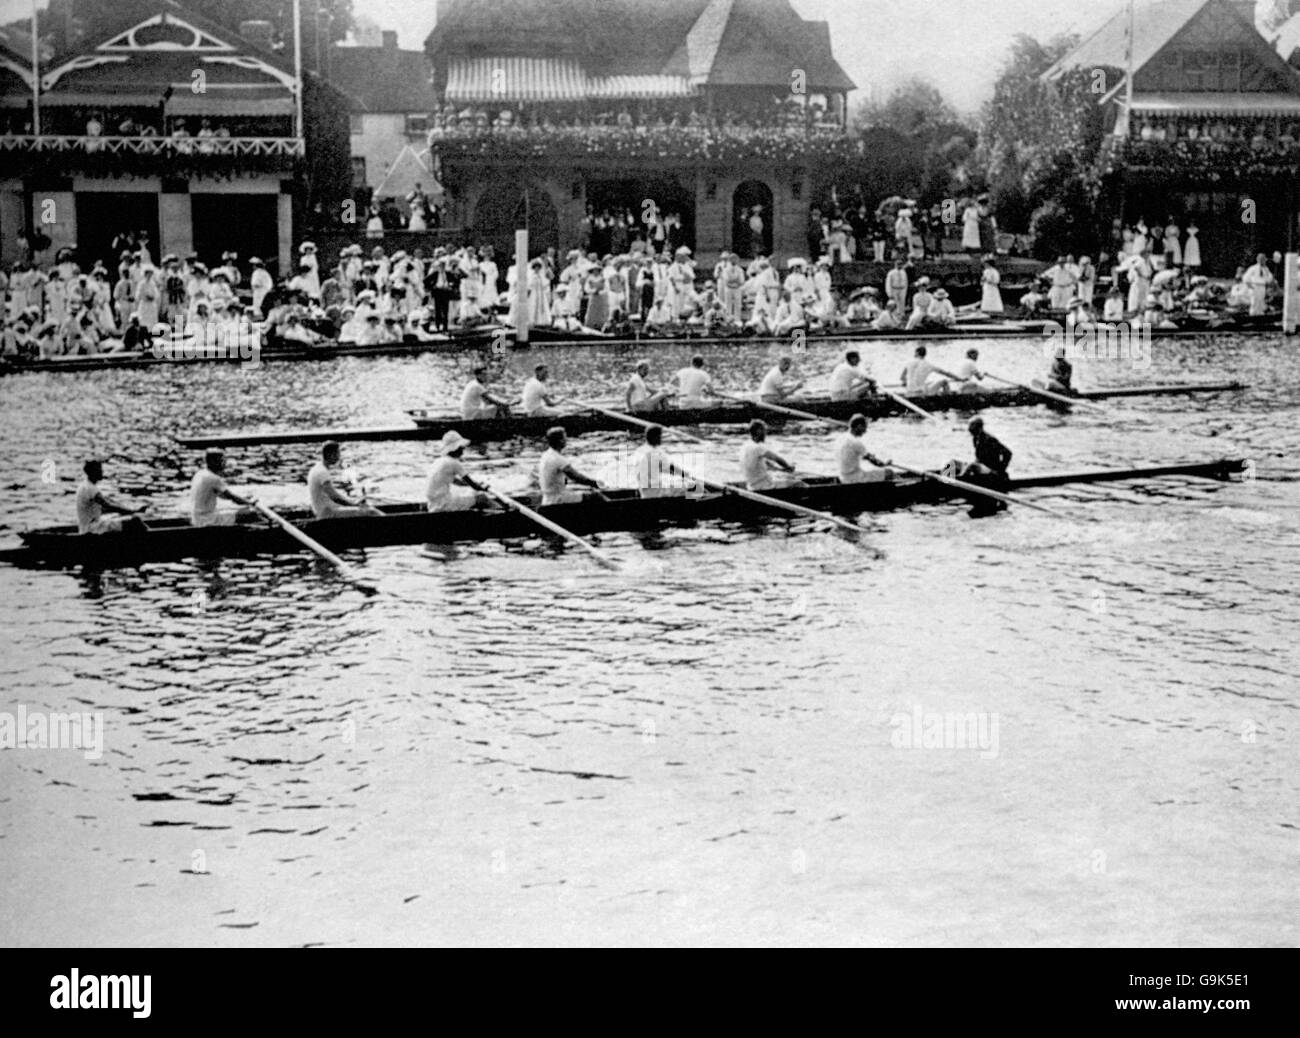 Rowing - London Olympic Games 1908 - Coxed Eights - Henley - Stock Image